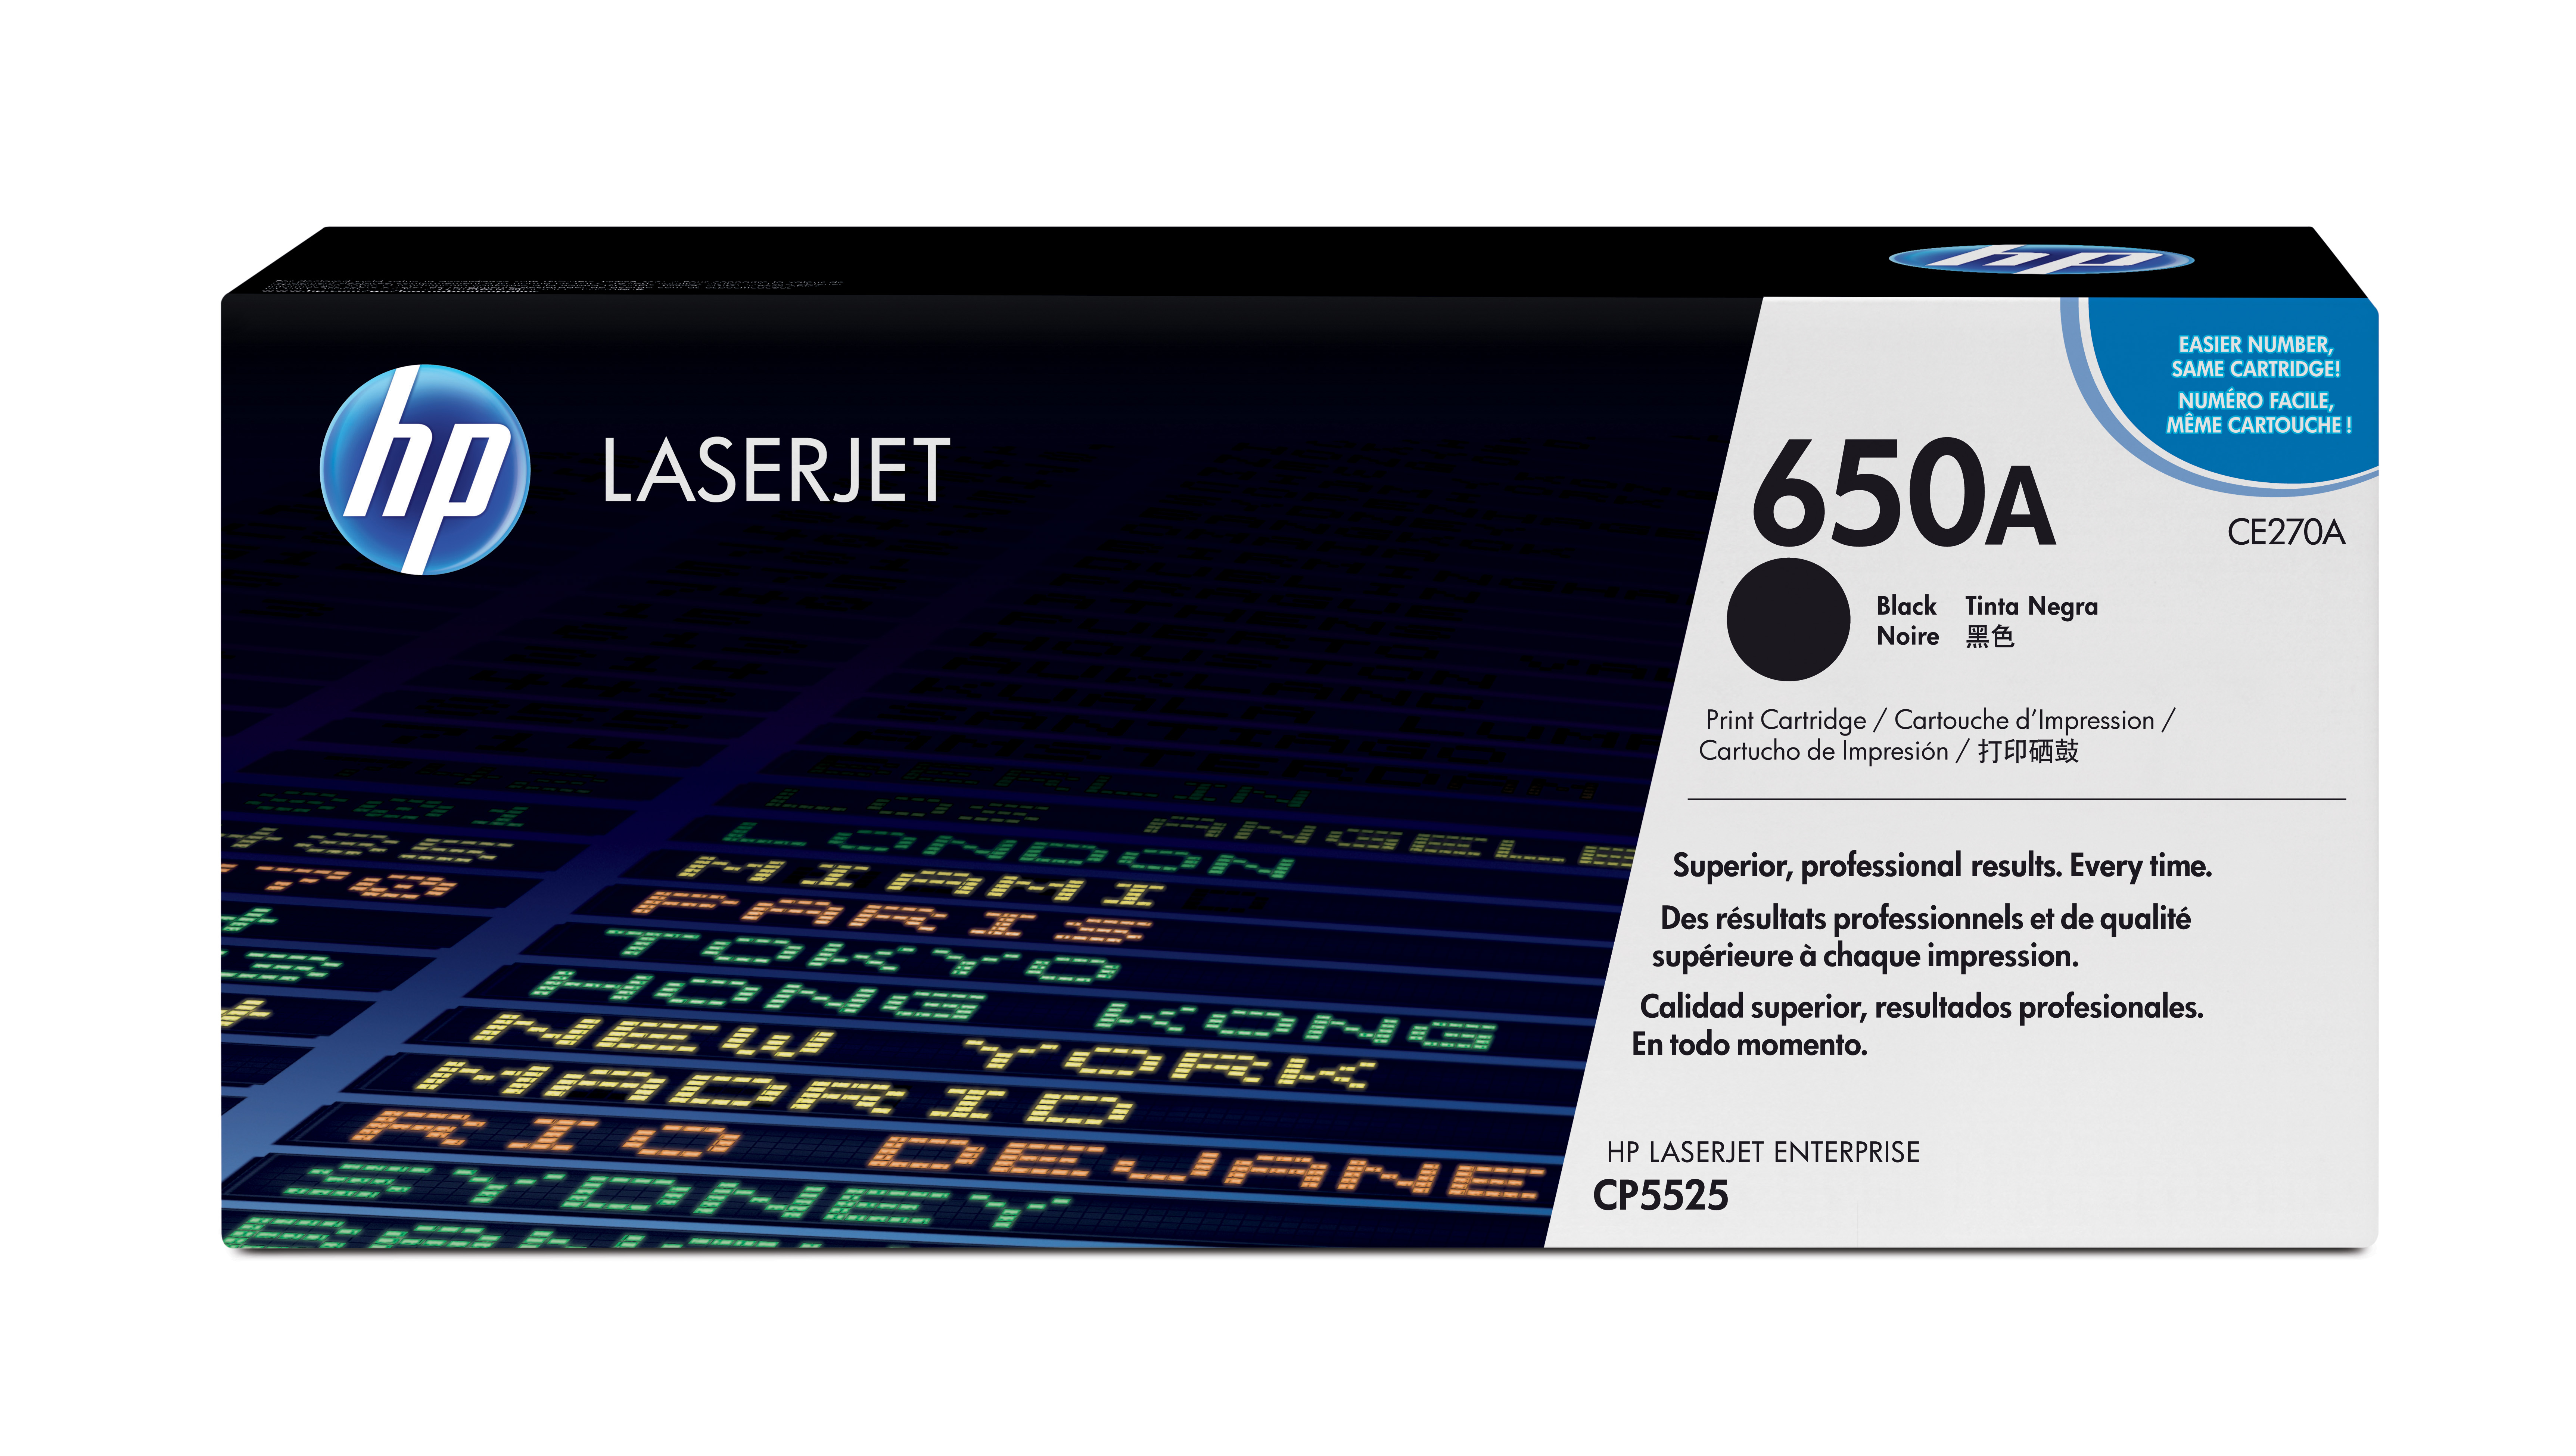 HP 650A Black Toner Cartridge CE270A